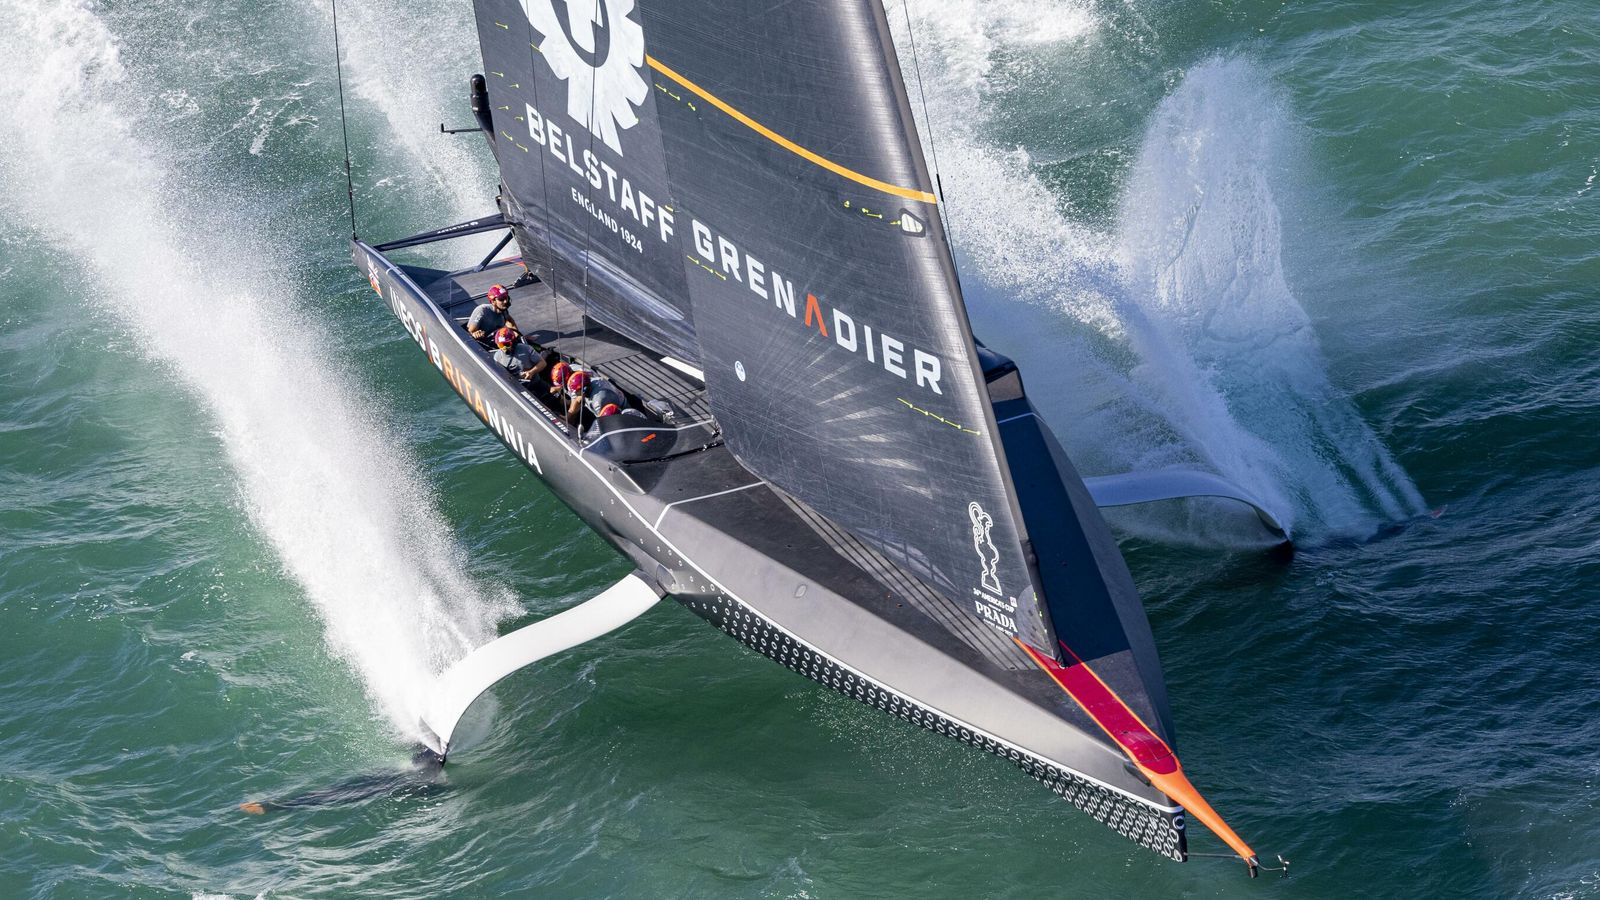 36th America's Cup: INEOS TEAM UK set for significant second day in PRADA Cup Final